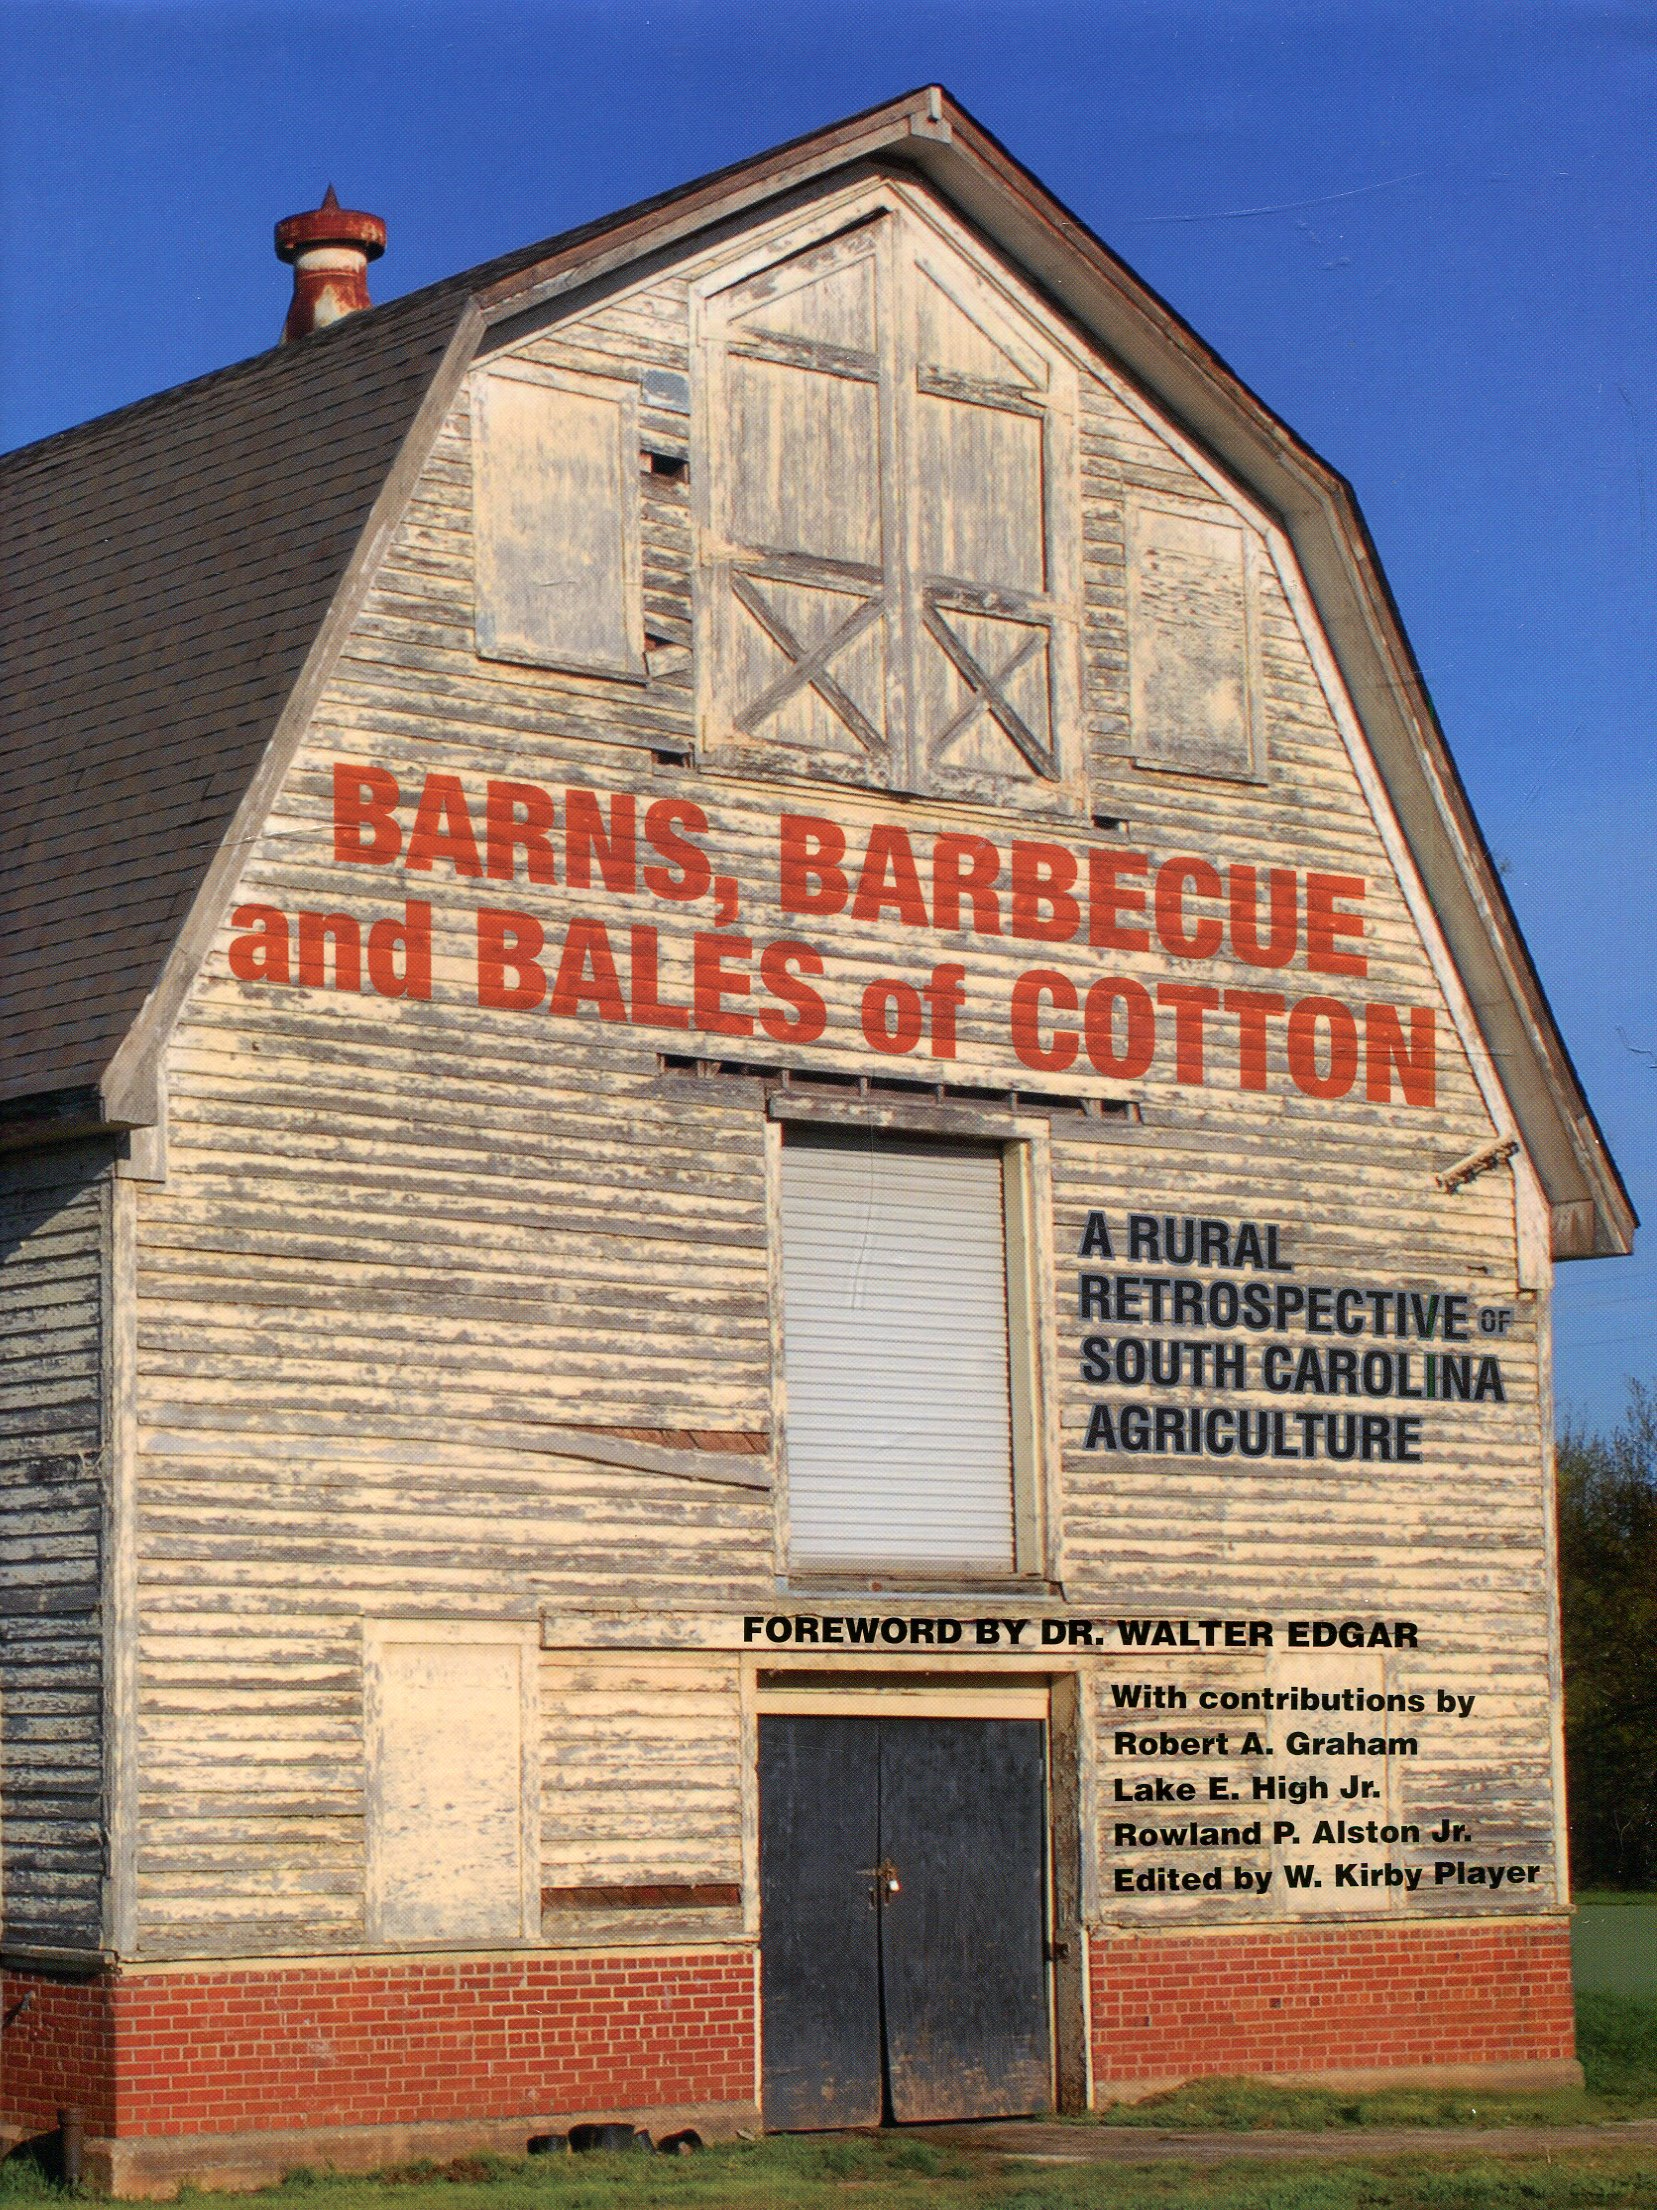 Book cover image of Barns, barbecue, and bales of cotton : a rural retrospective of South Carolina agriculture